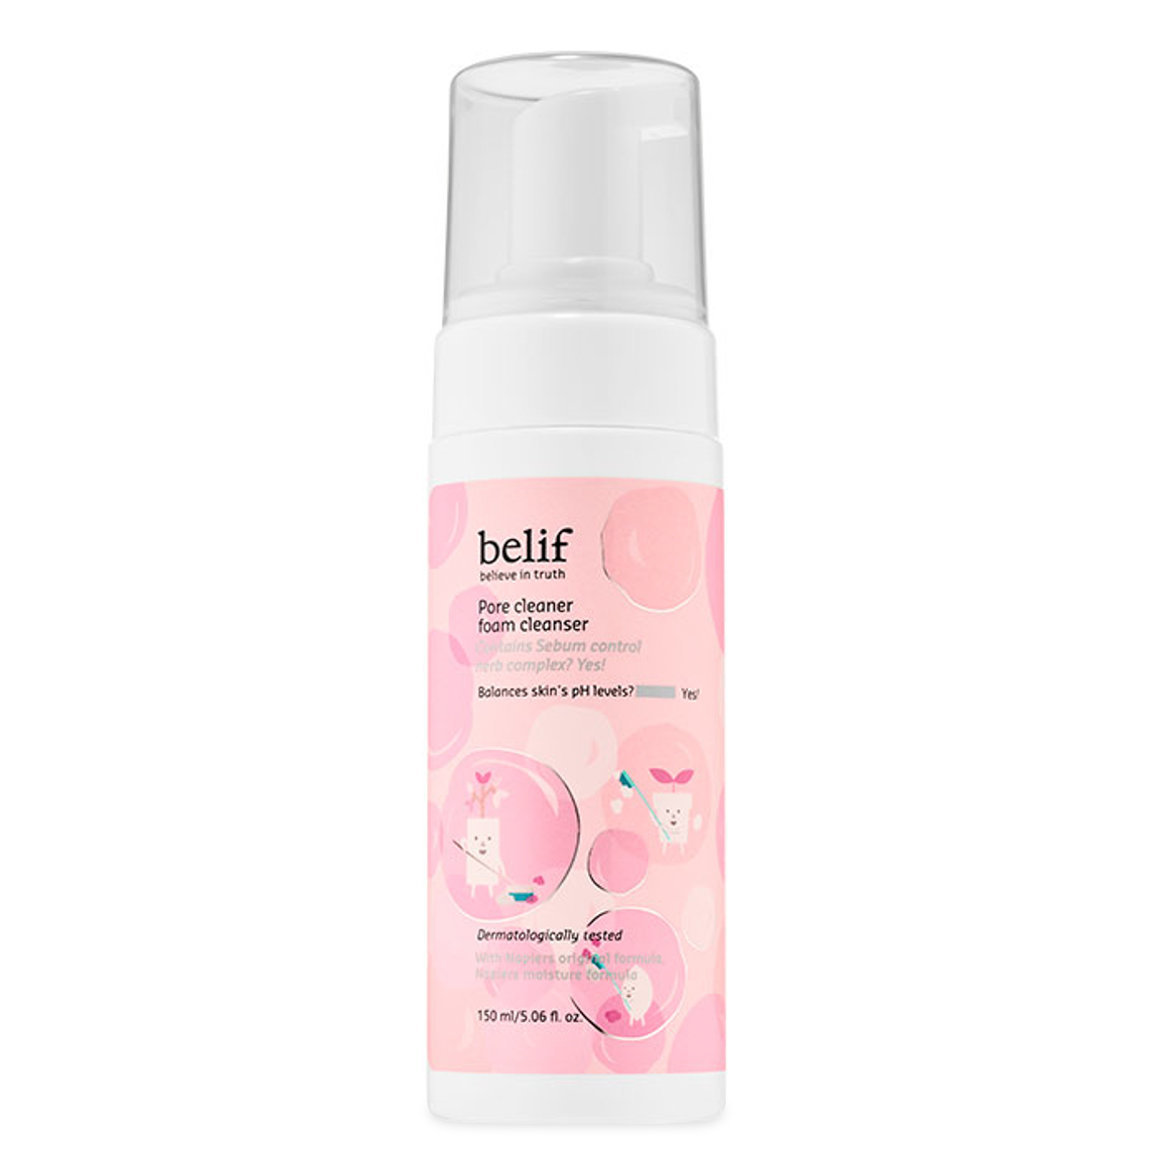 belif Pore Cleaner Foam Cleanser alternative view 1 - product swatch.